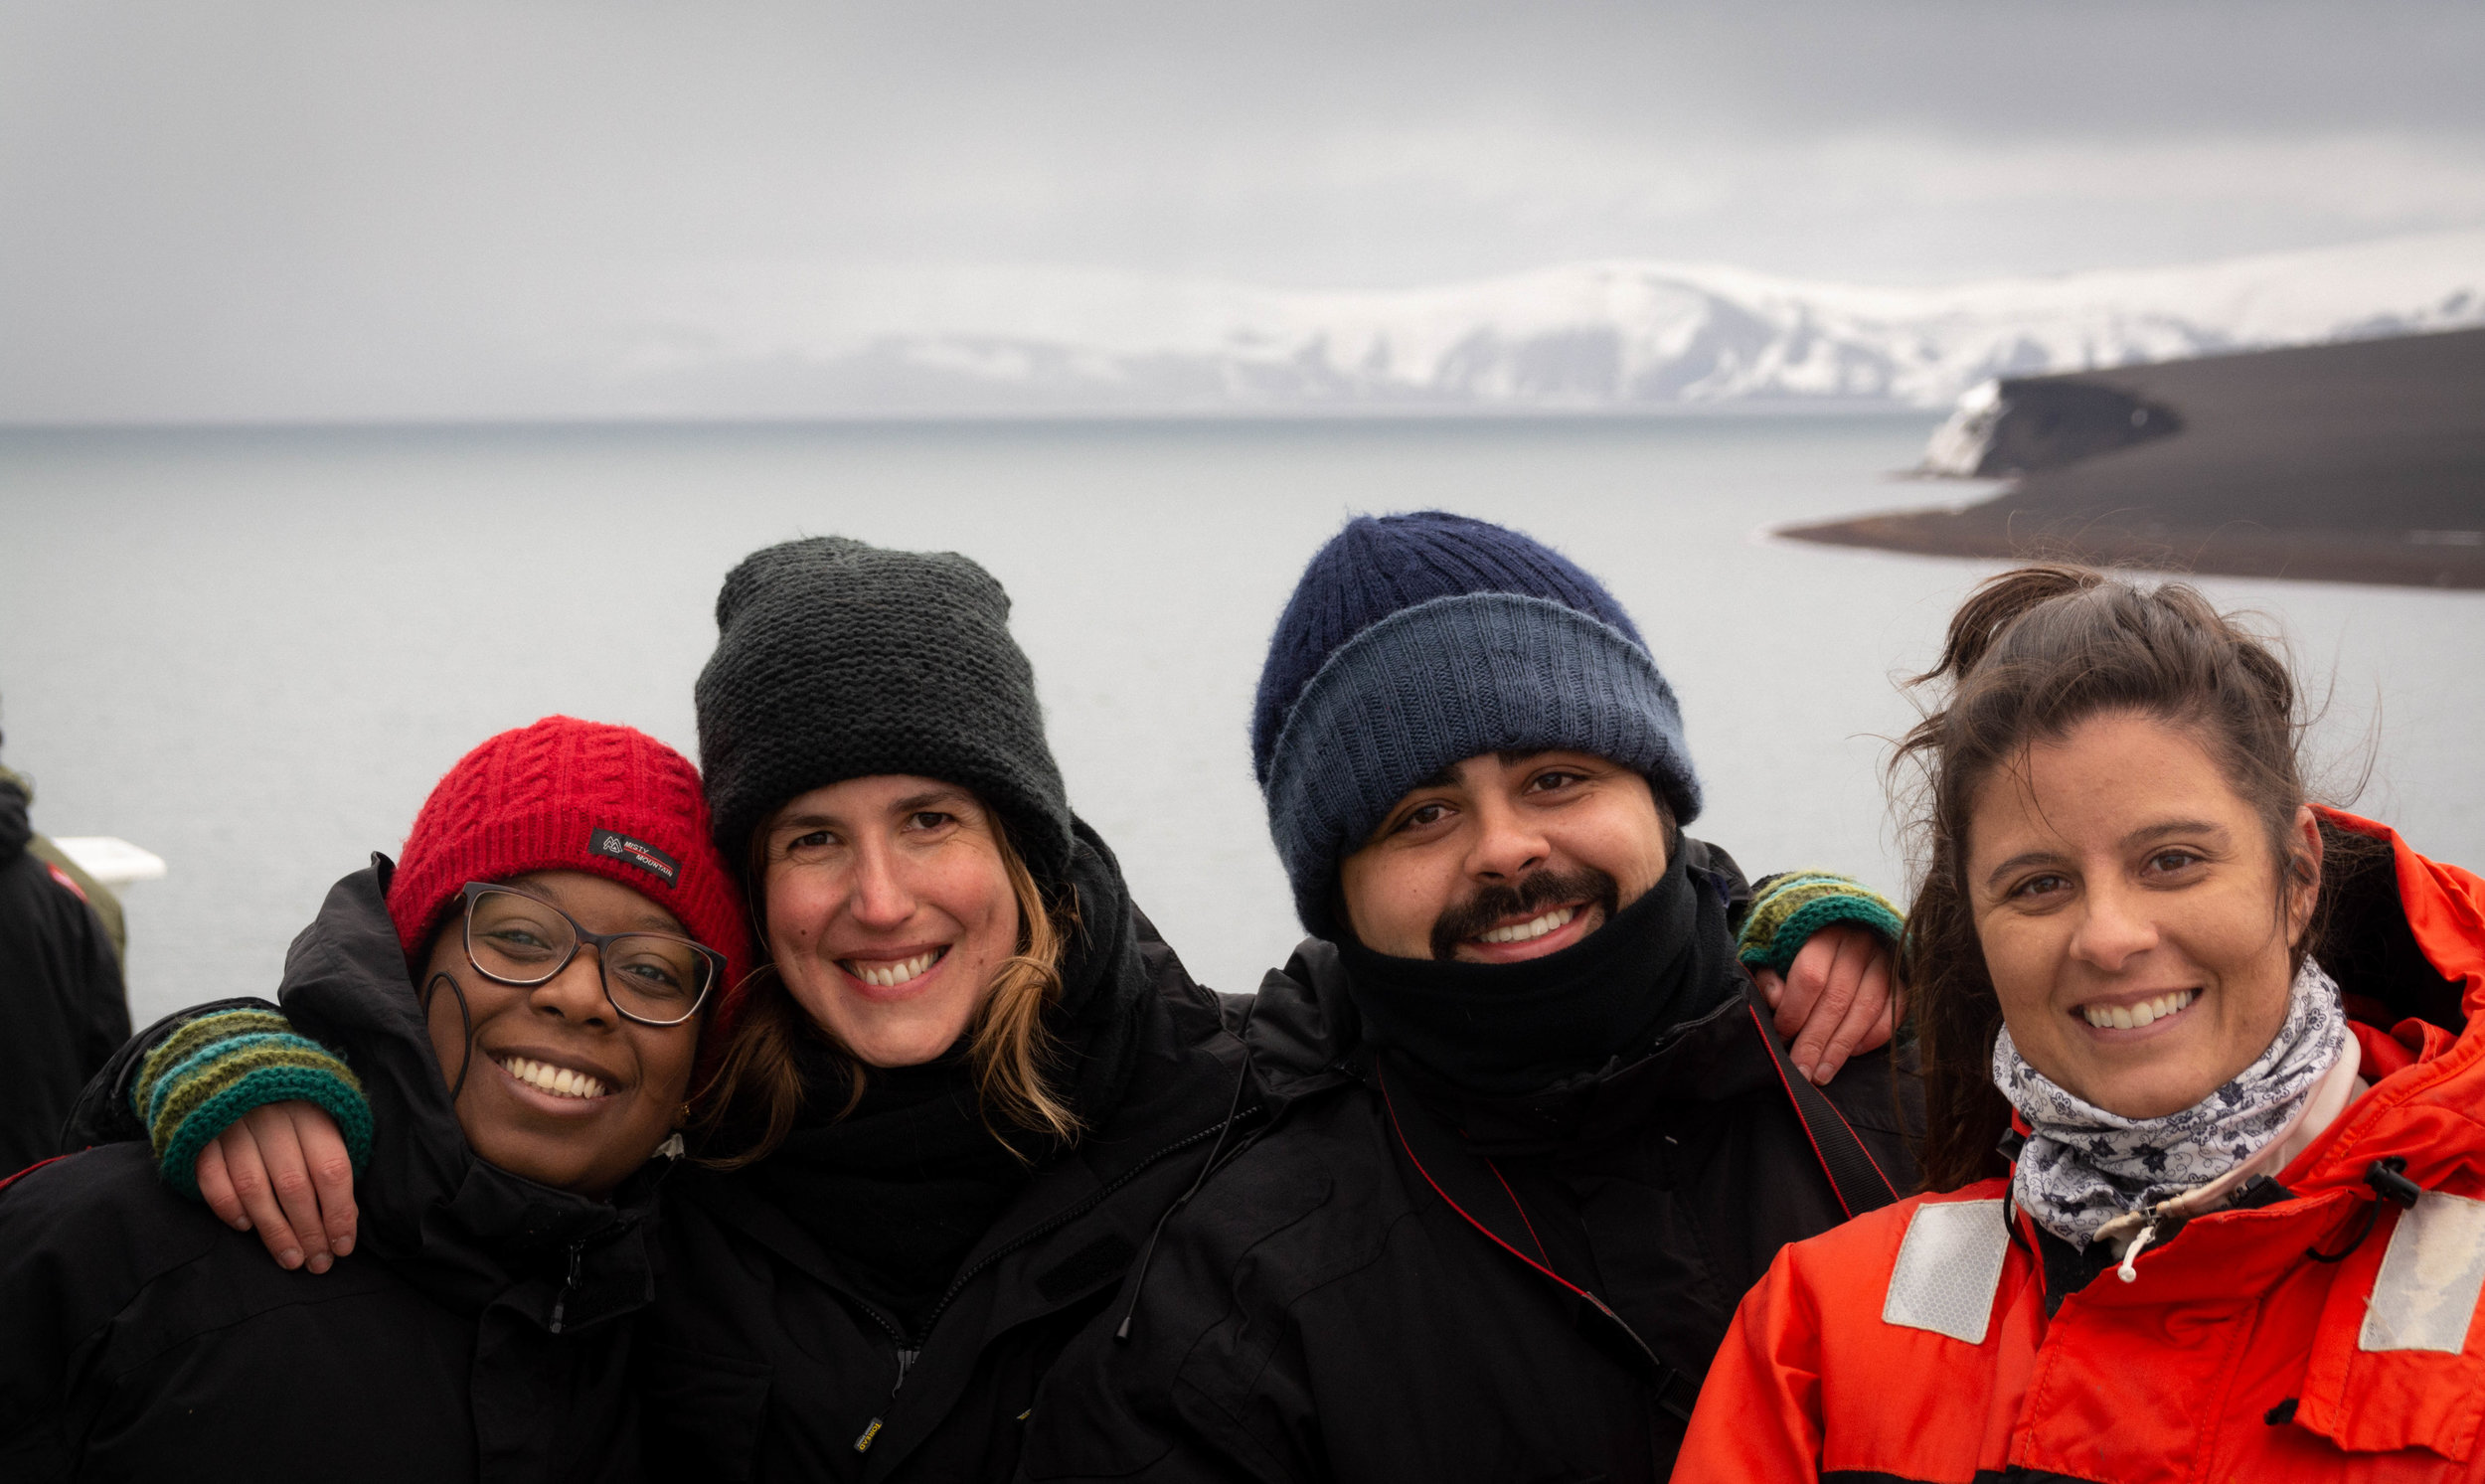 Happiness on board, with Deception Island in the background. From left to right: Raquel Avelina (oceanographer, State University of Rio de Janeiro), Catarina Guerreiro (Marine Geologist, MARE-FCiências.ID), Renan Lima (oceanographer, FURG) and Camila Signori (oceanographer, University of São Paulo).